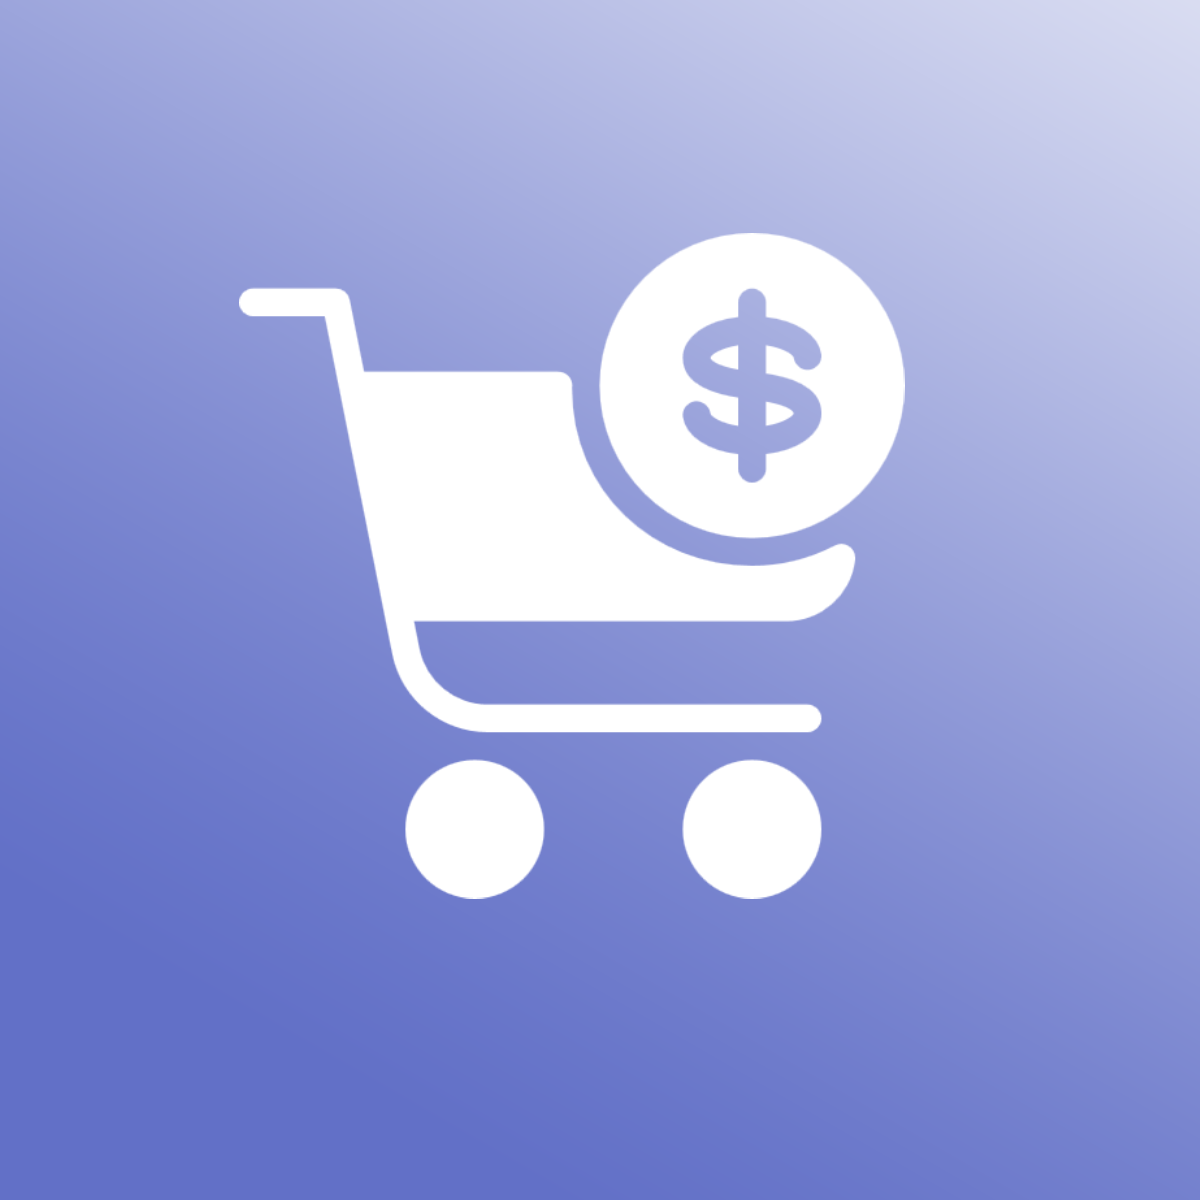 Shopify Skip Cart Apps by Apps on demand